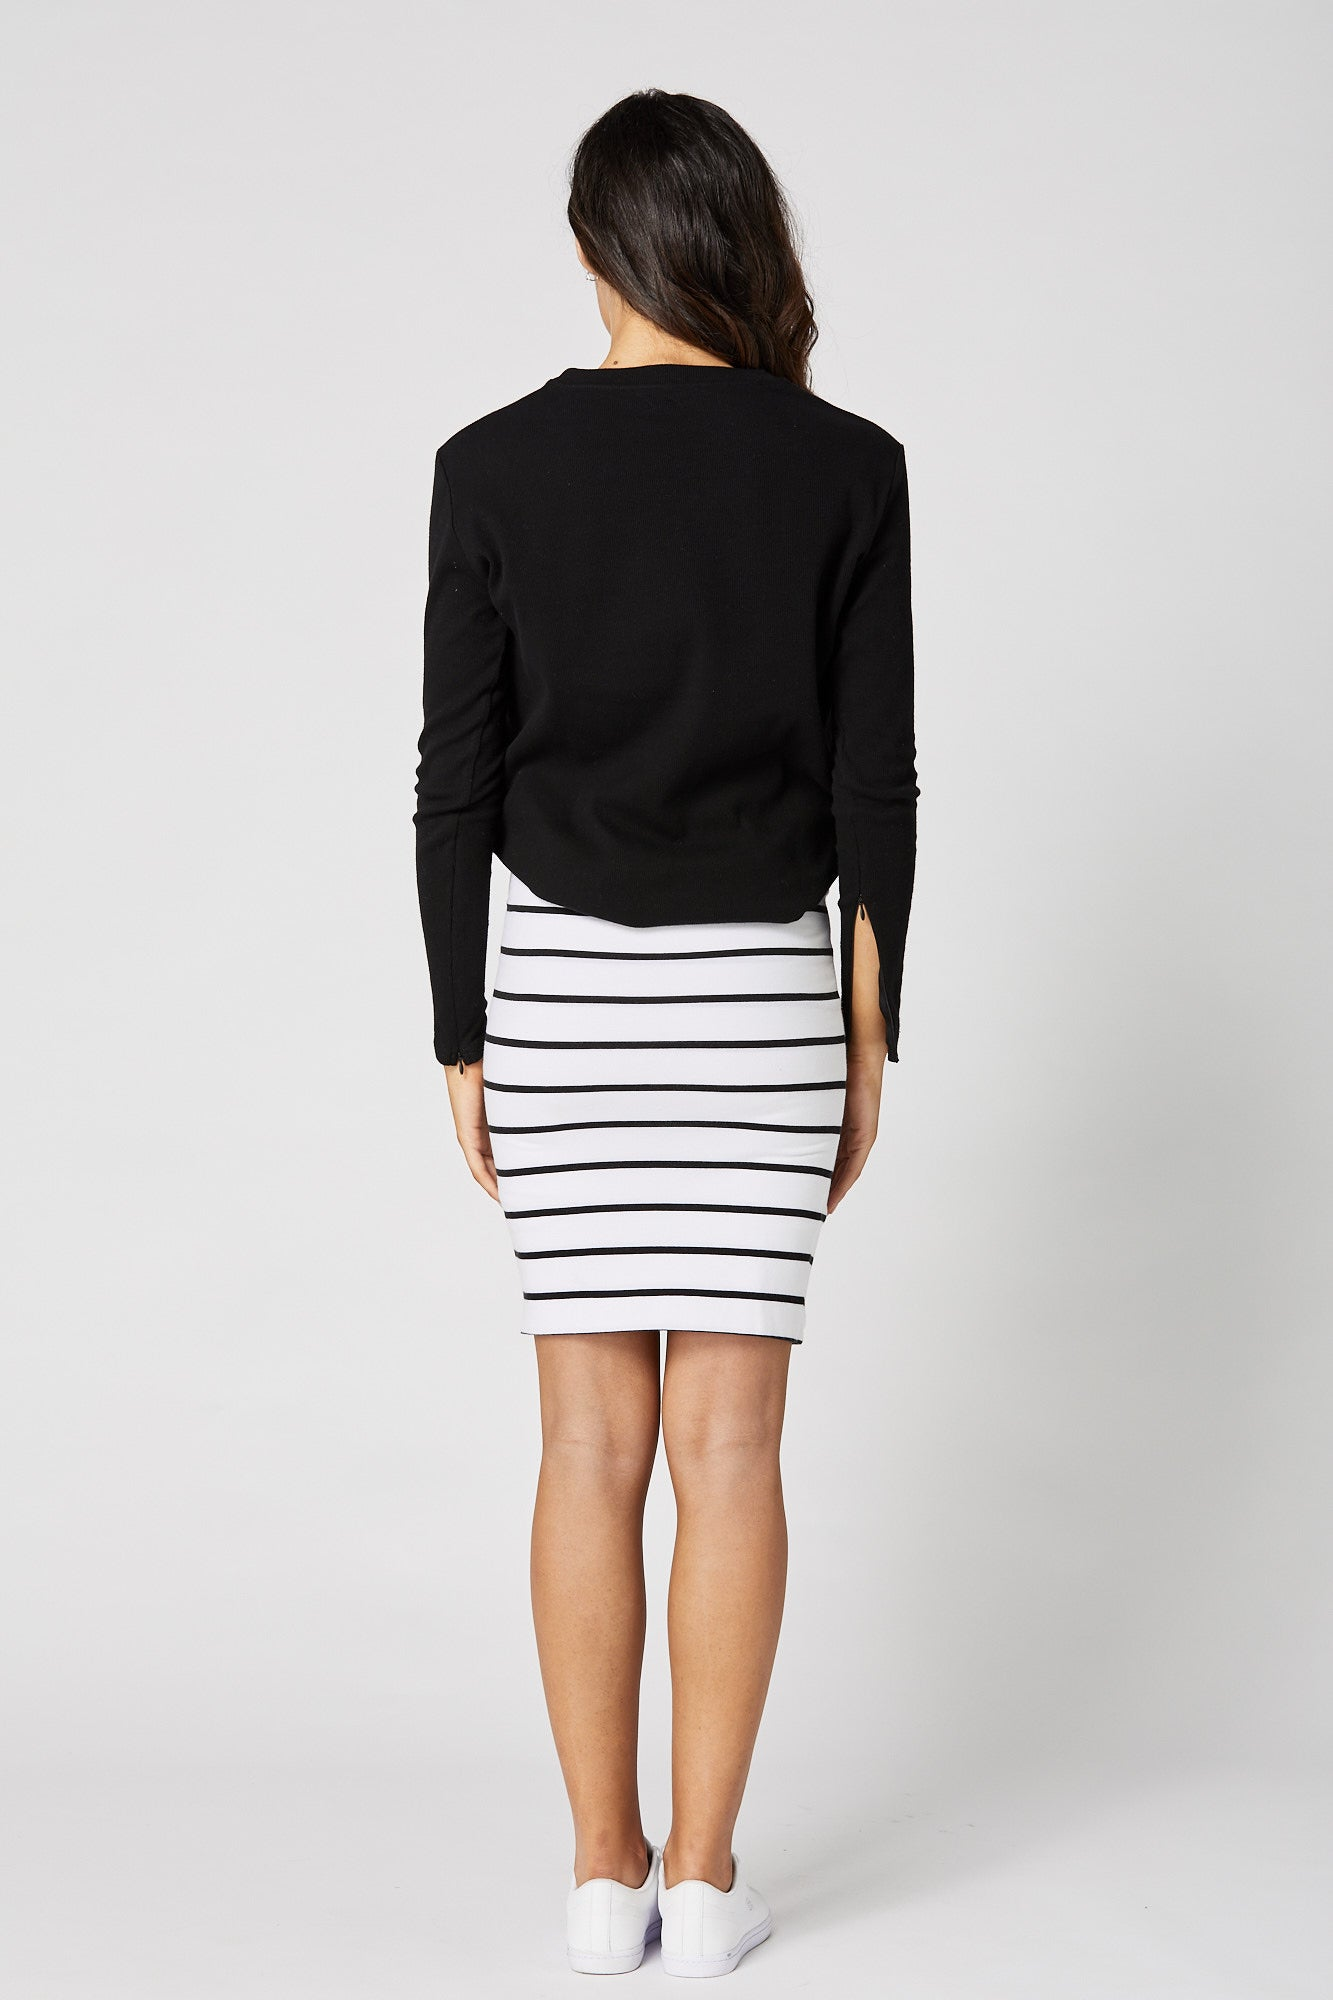 Downtown Skirt - LEGOE.